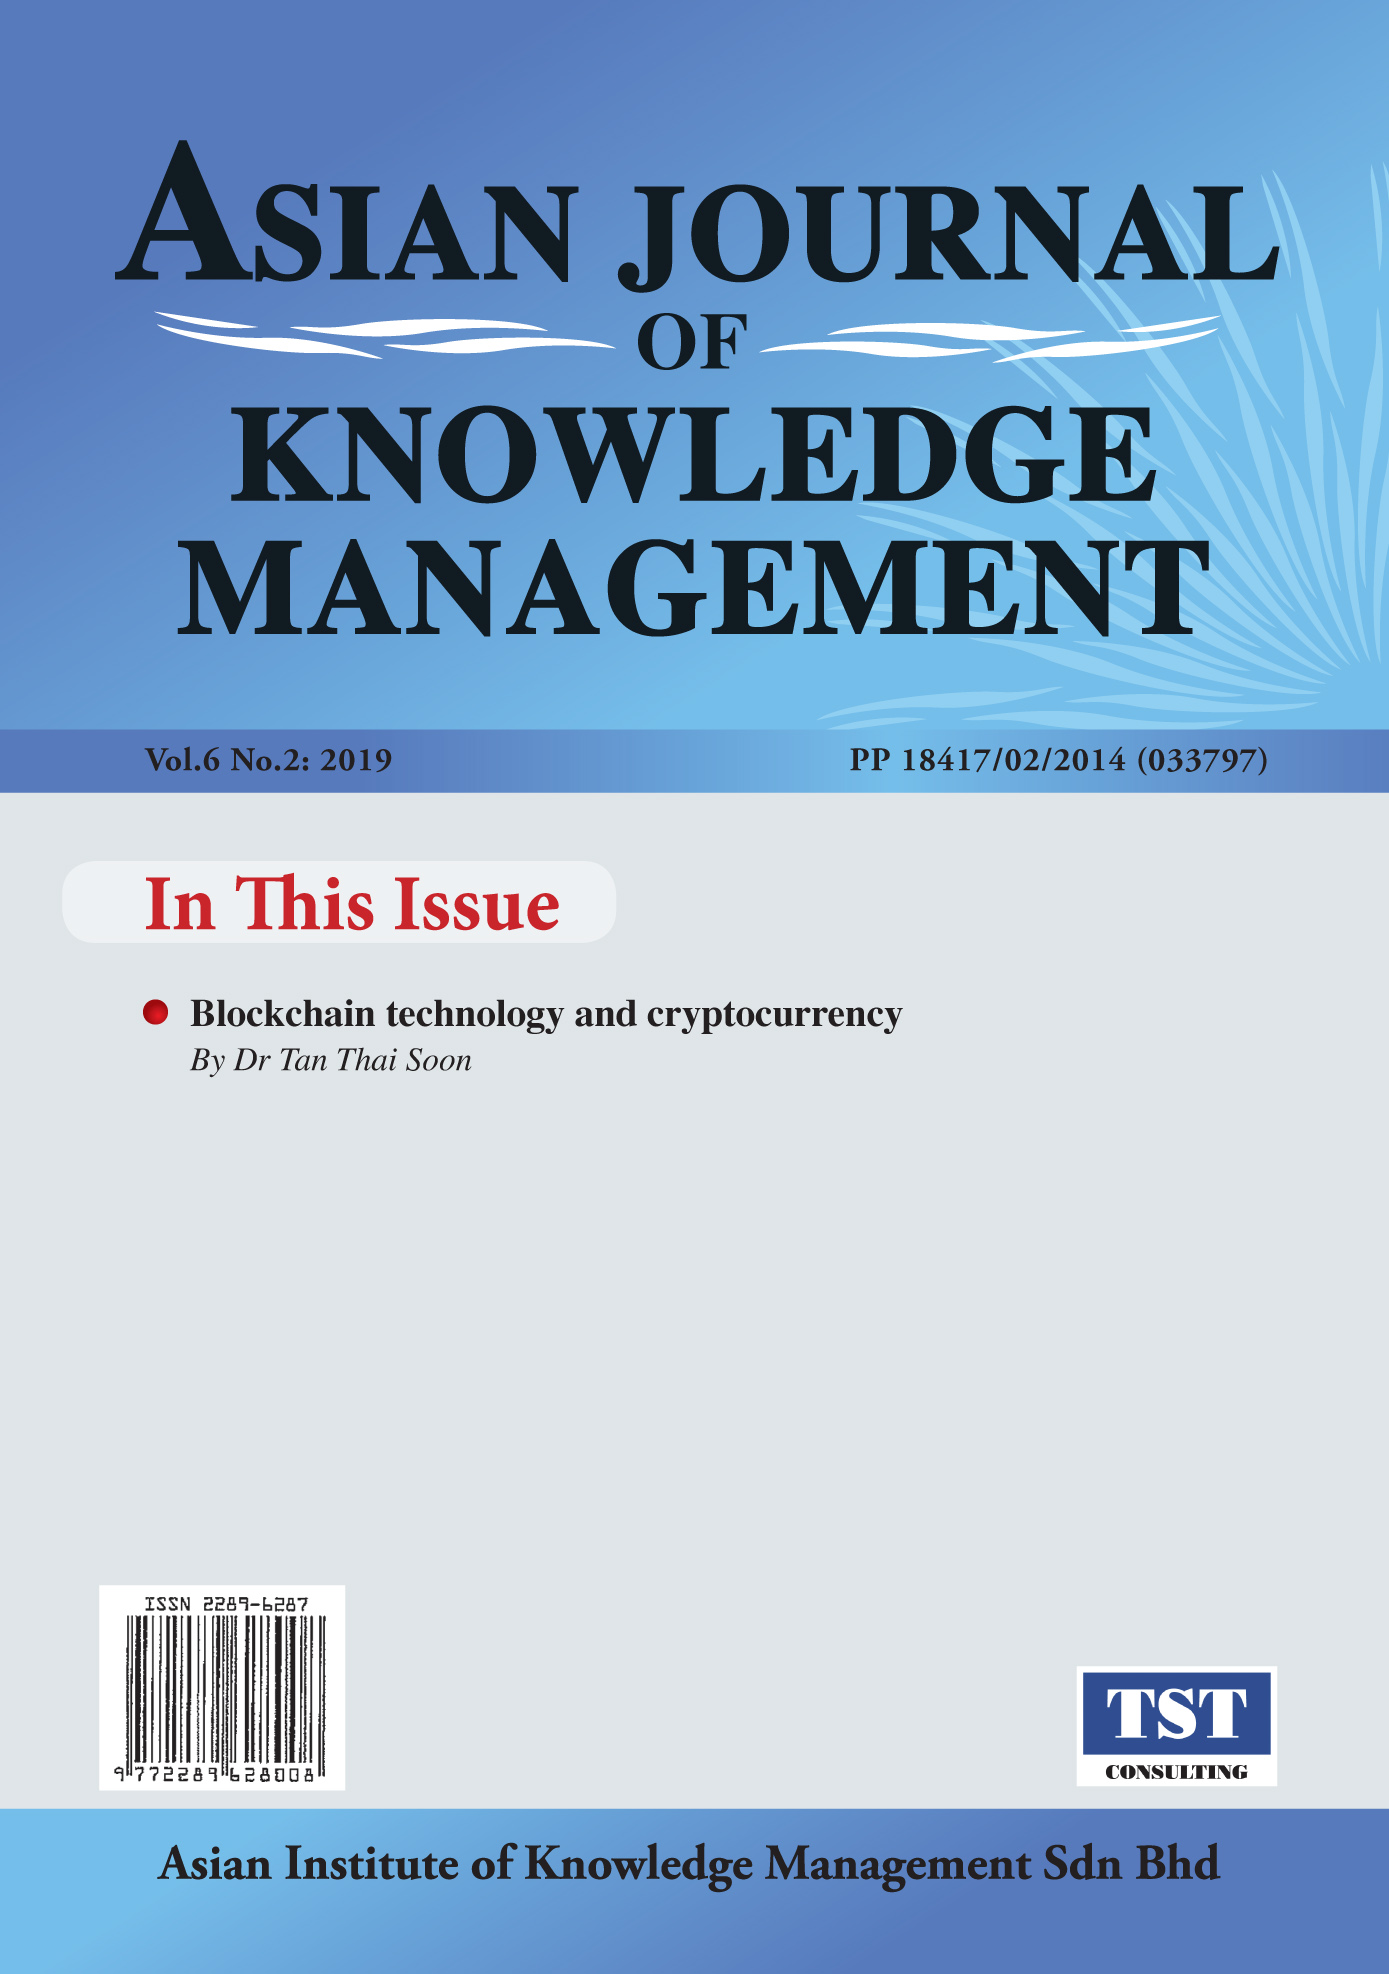 Course Image Blockchain technology and cryptocurrency (Free eArticle)